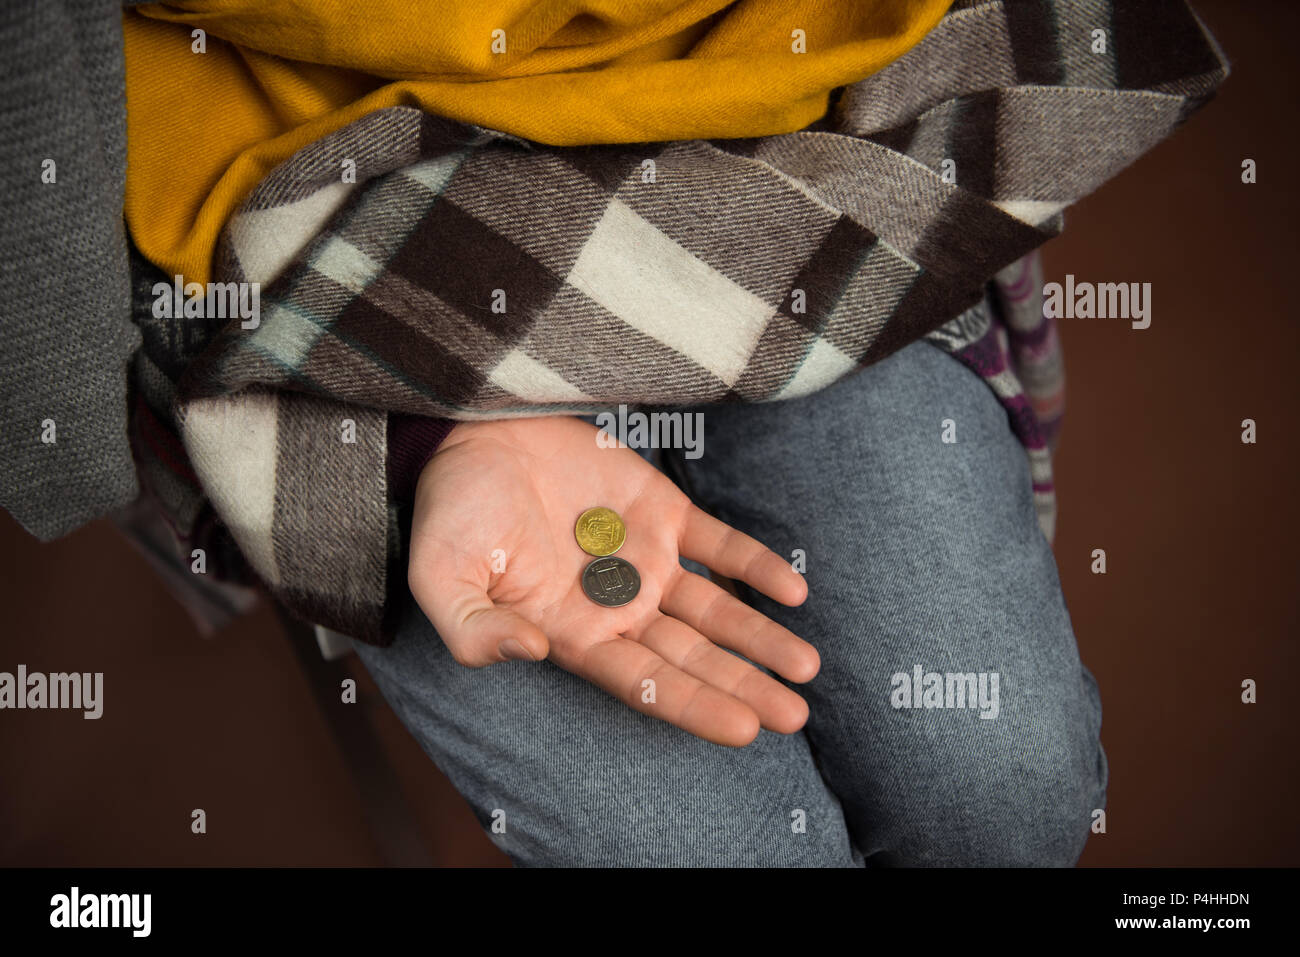 Cropped image of poor man holding coins on hand isolated on brown - Stock Image